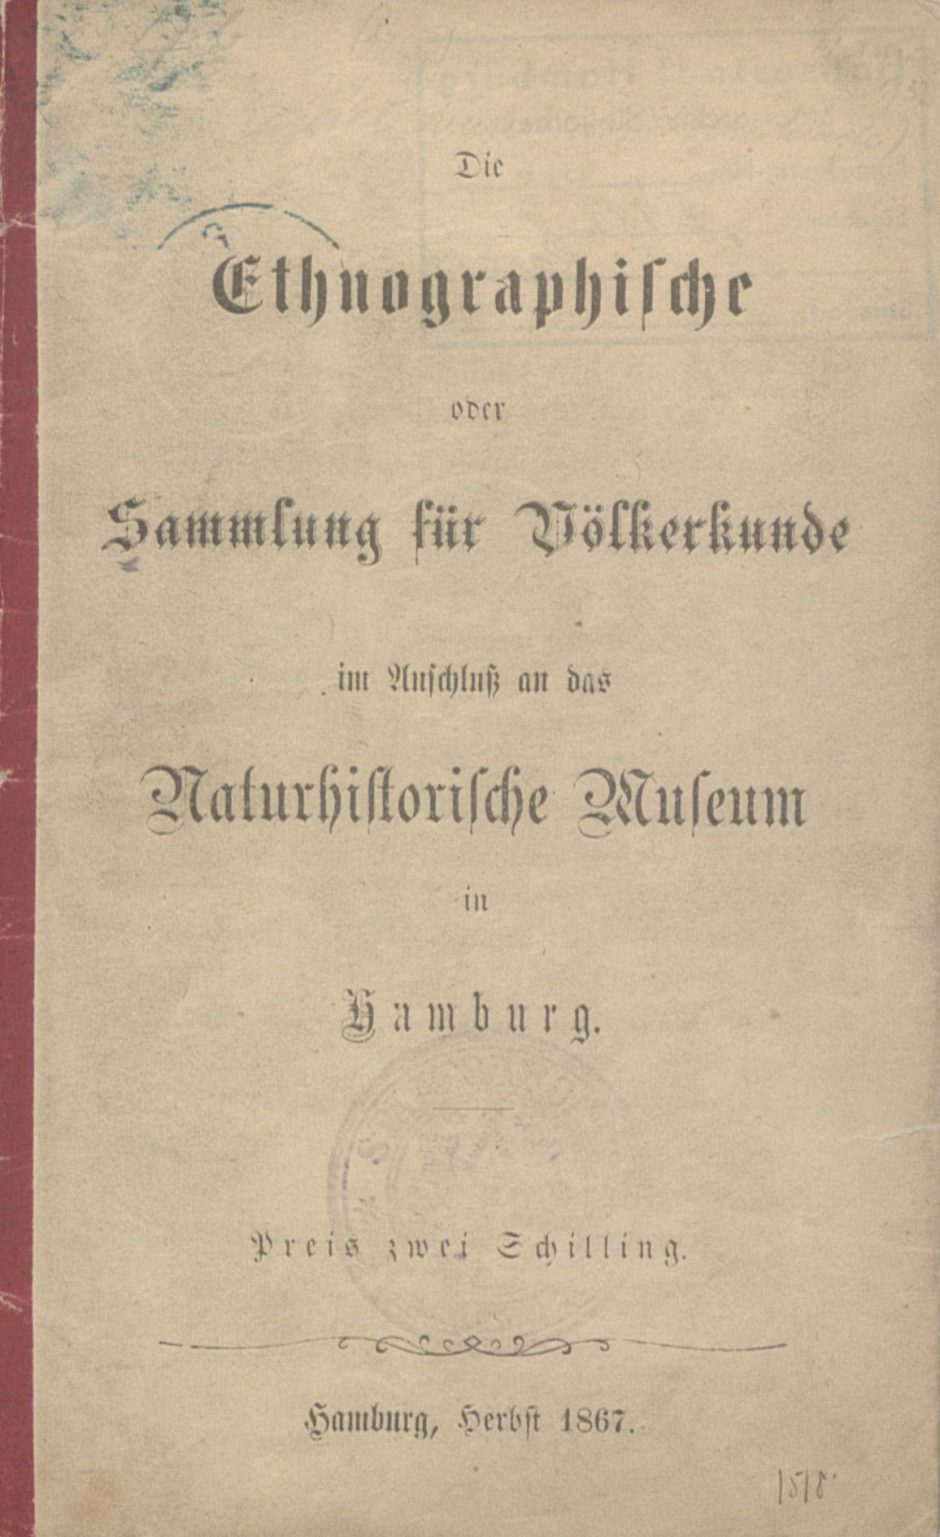 View of the historical collection catalogue, cover